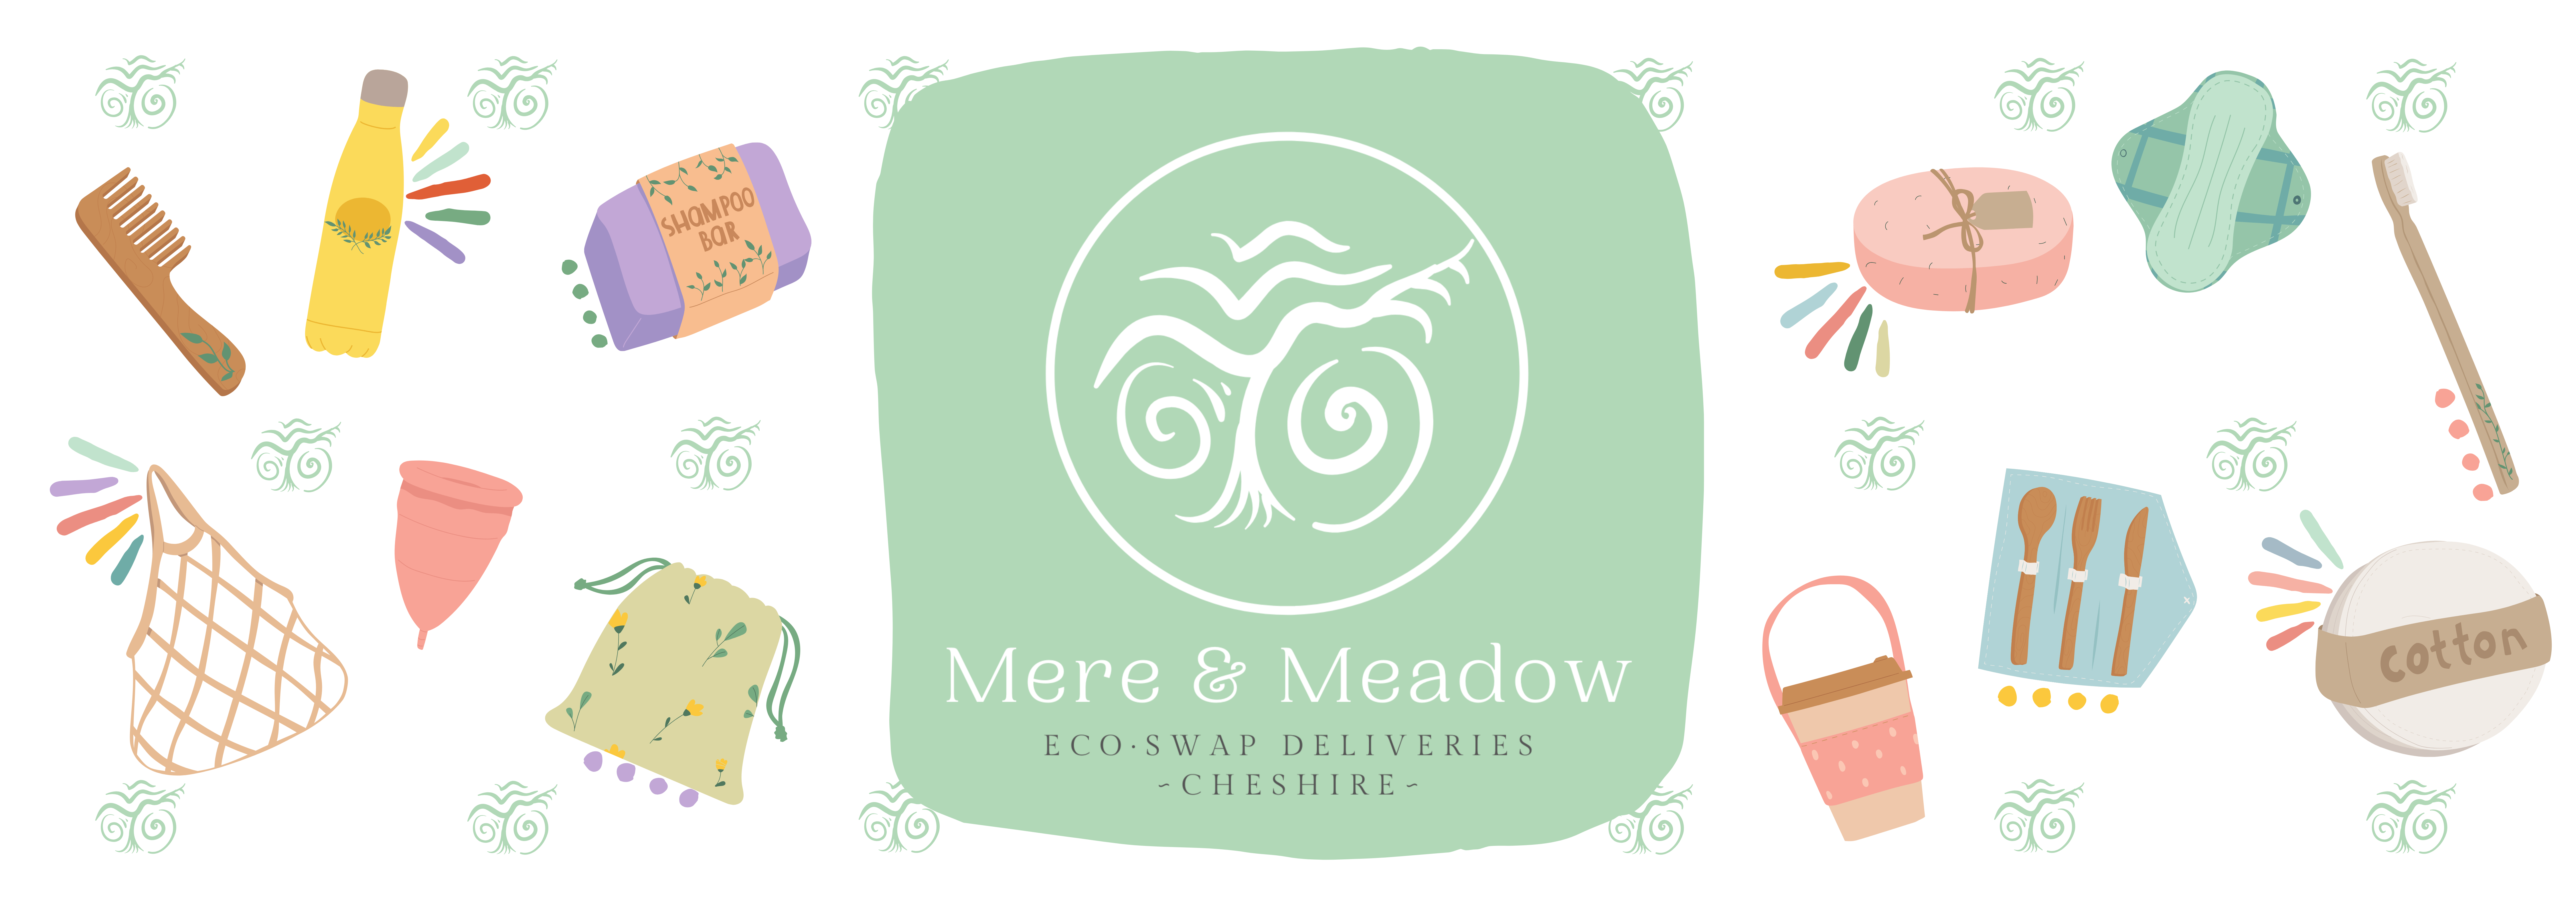 Mere & Meadow Eco·Swap Deliveries Cheshire